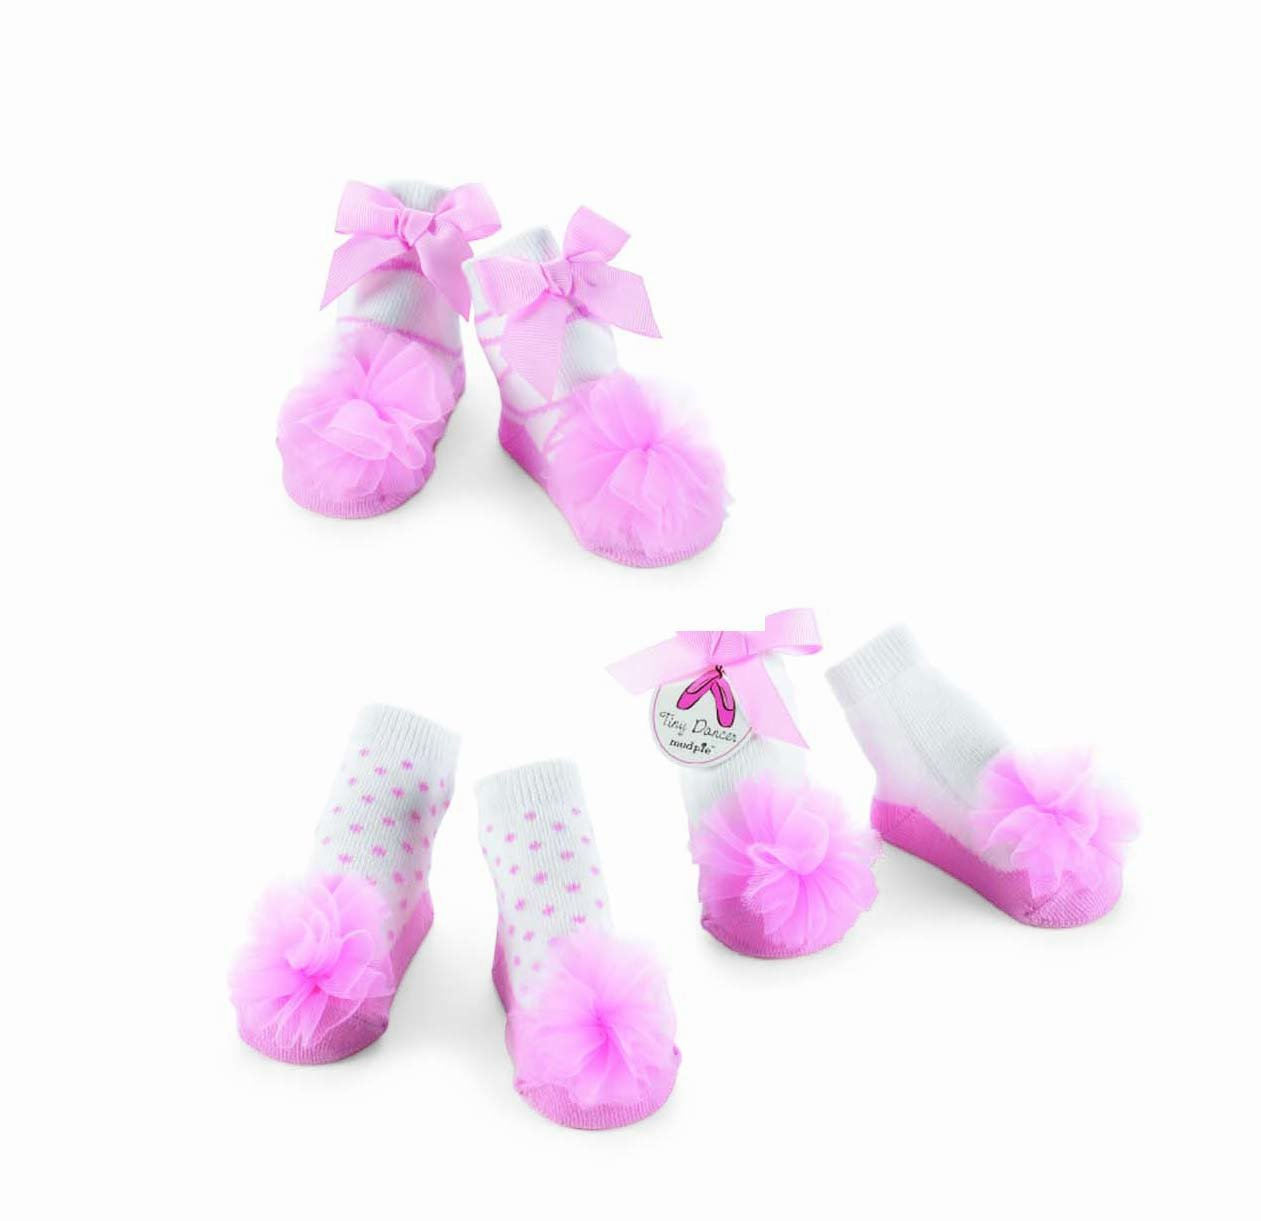 Mud Pie Baby TINY DANCER SOCK SET OF 3 173738 Tiny Dancer Collection by Mud Pie